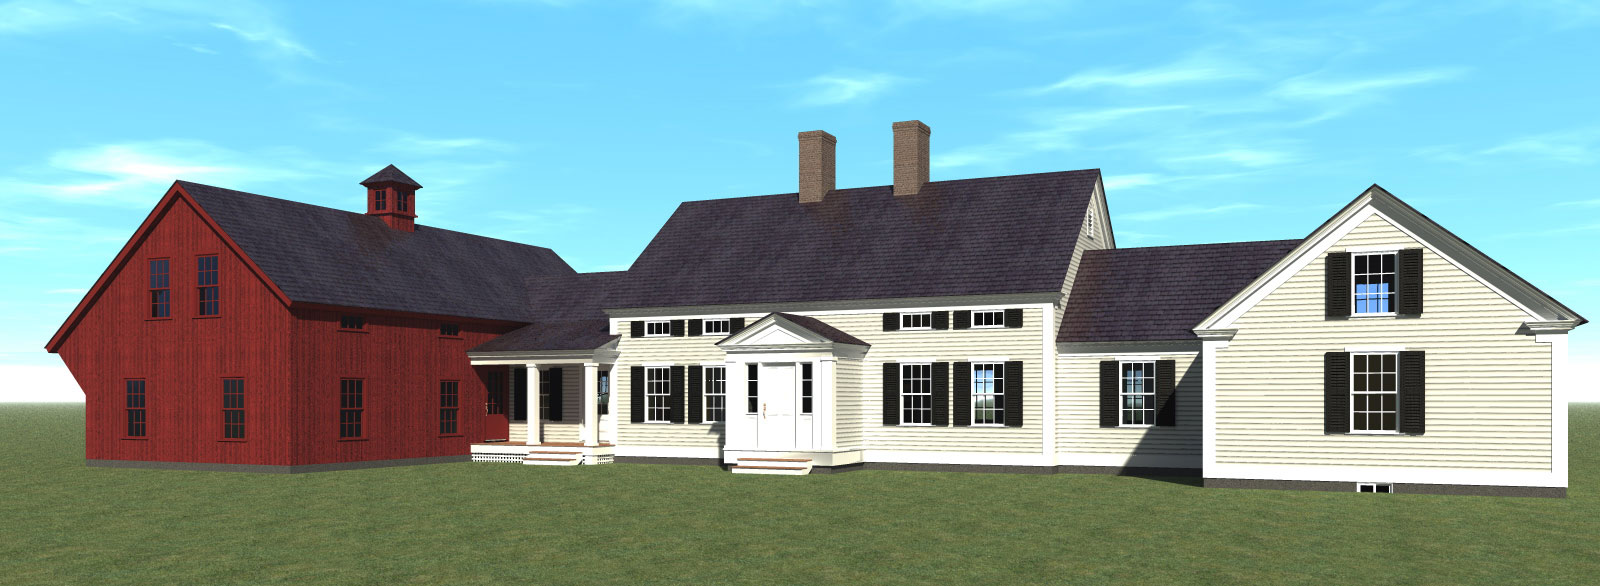 Badger and associates inc house plans for sale for Houses plans for sale